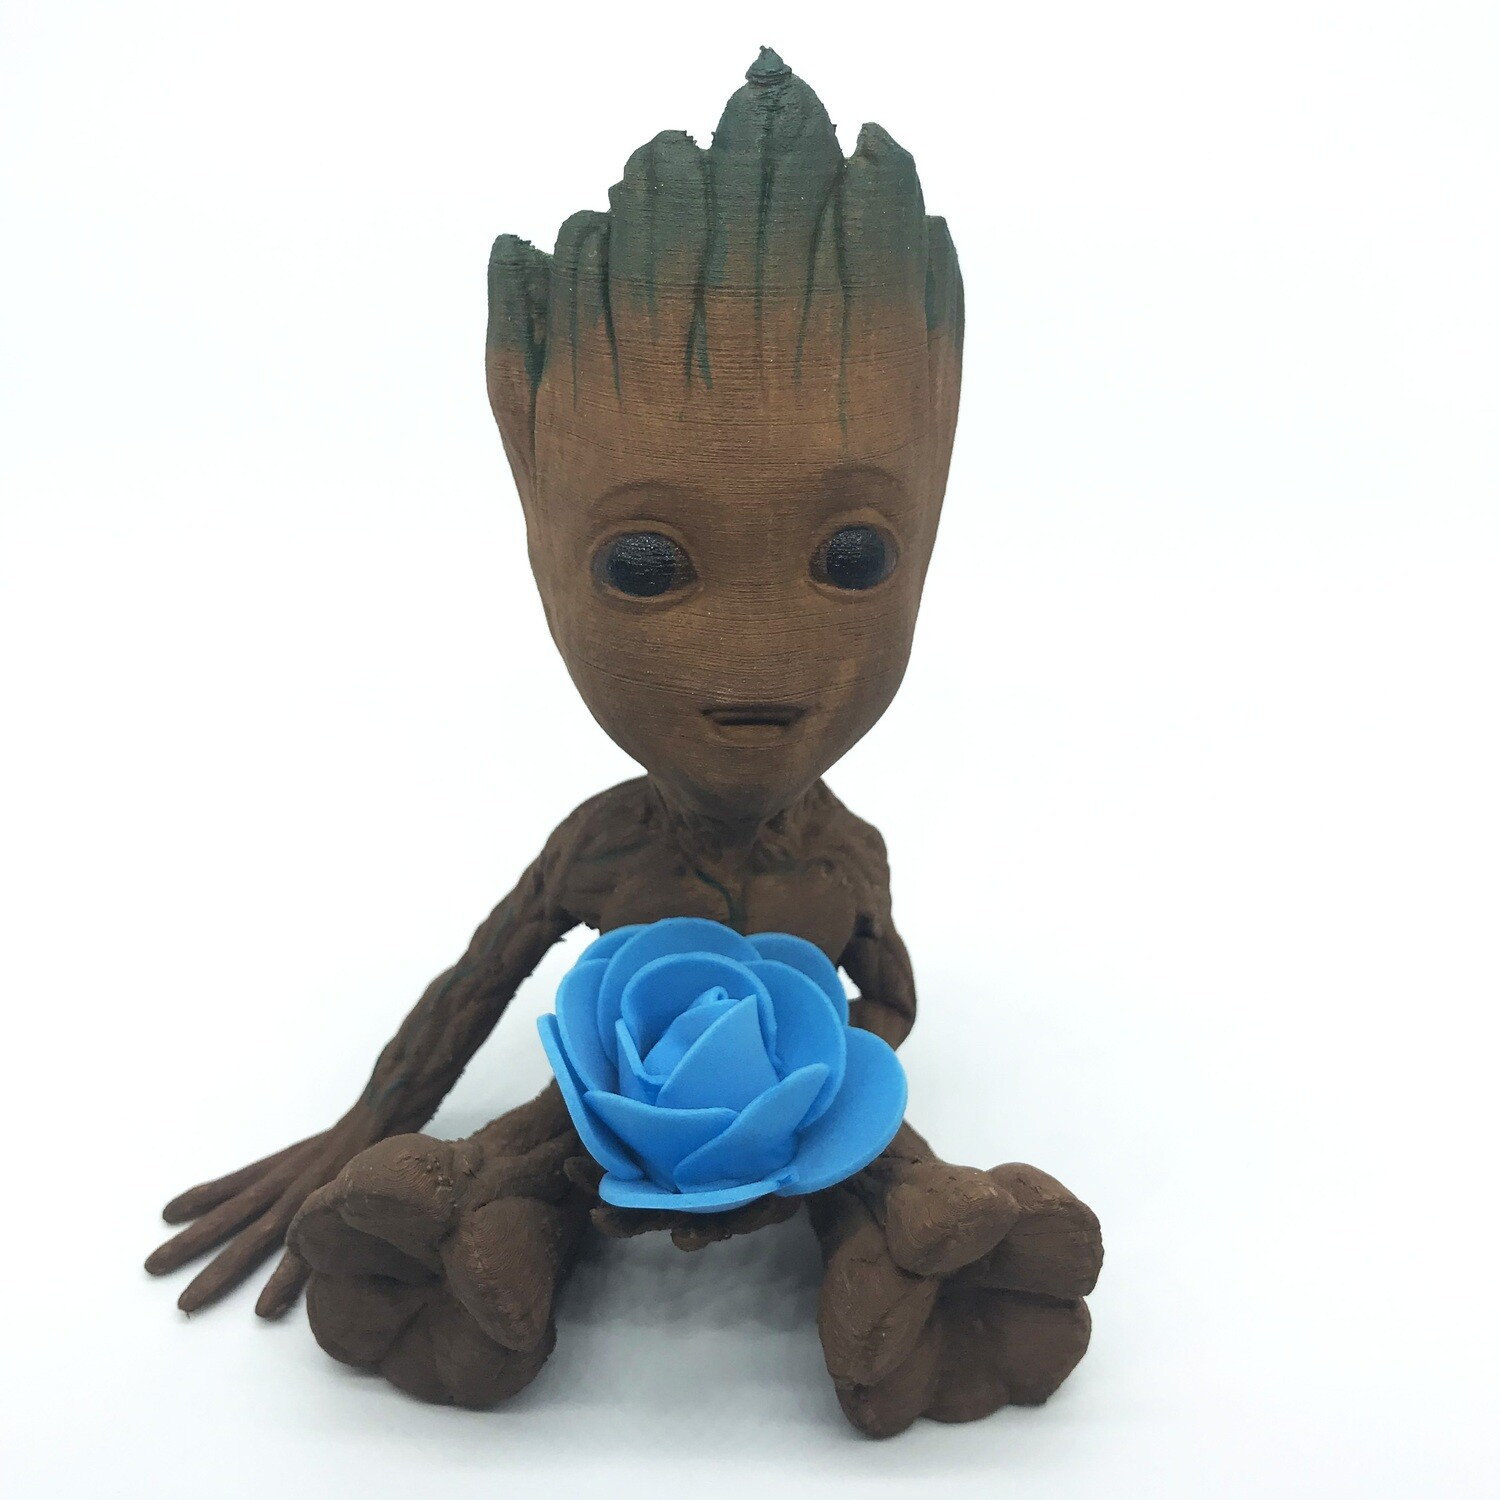 Cute & Happy Tree planter holding blue flower